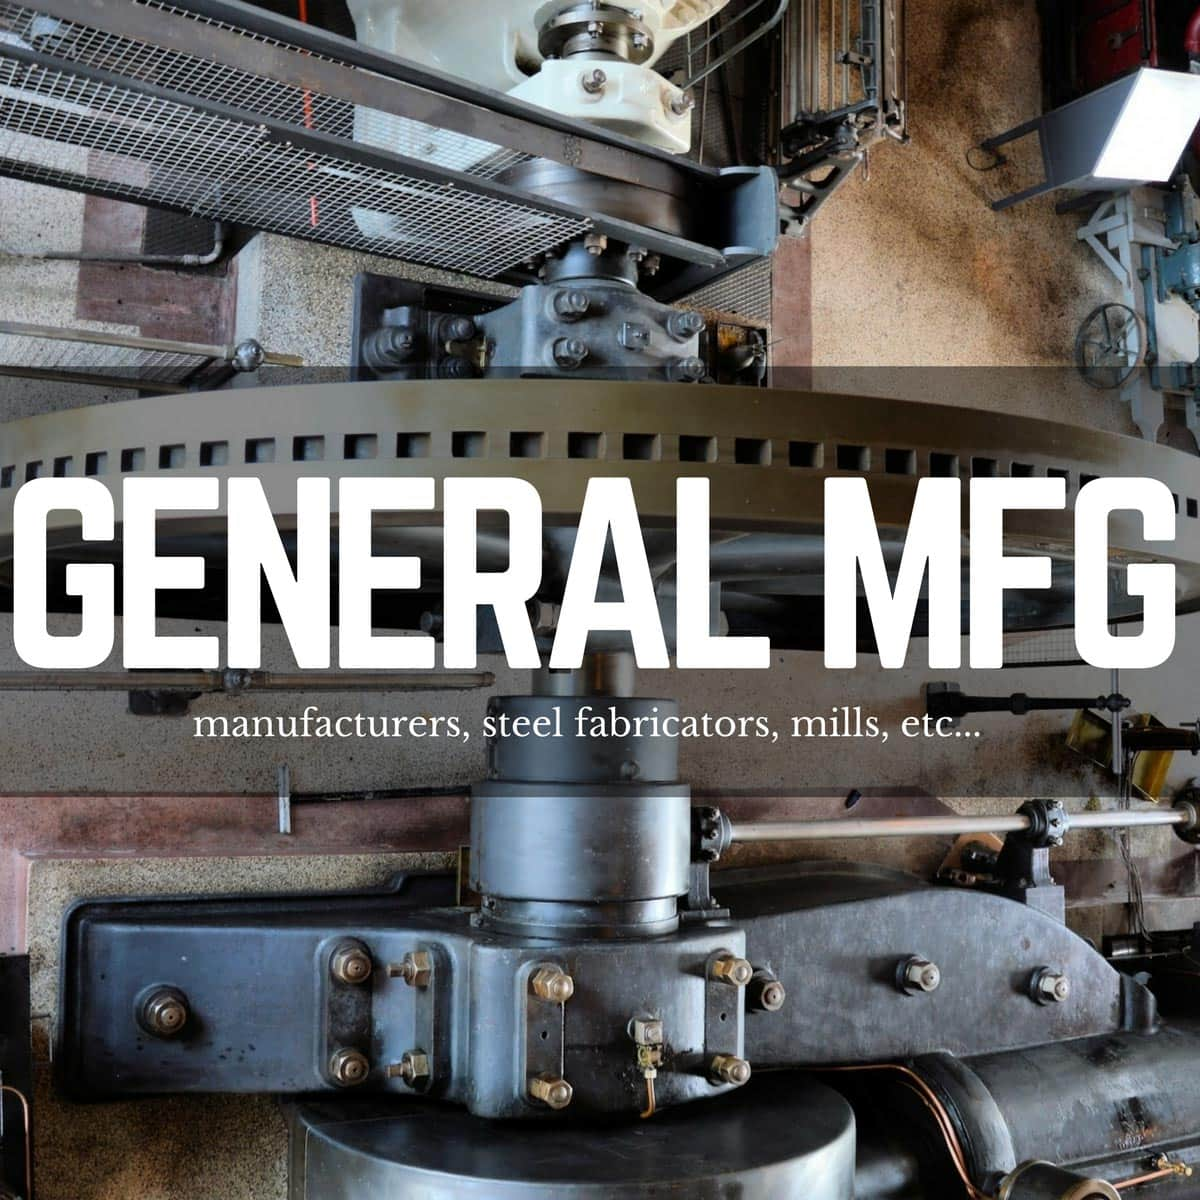 general manufacturing, textile mills, made in usa steel, made in usa textiles, made in usa manufacturing, american made textiles, american made steel, CNC Machining and Manufacturing, America Made Manufacturers, made in usa products list, made in america products list, american made products list